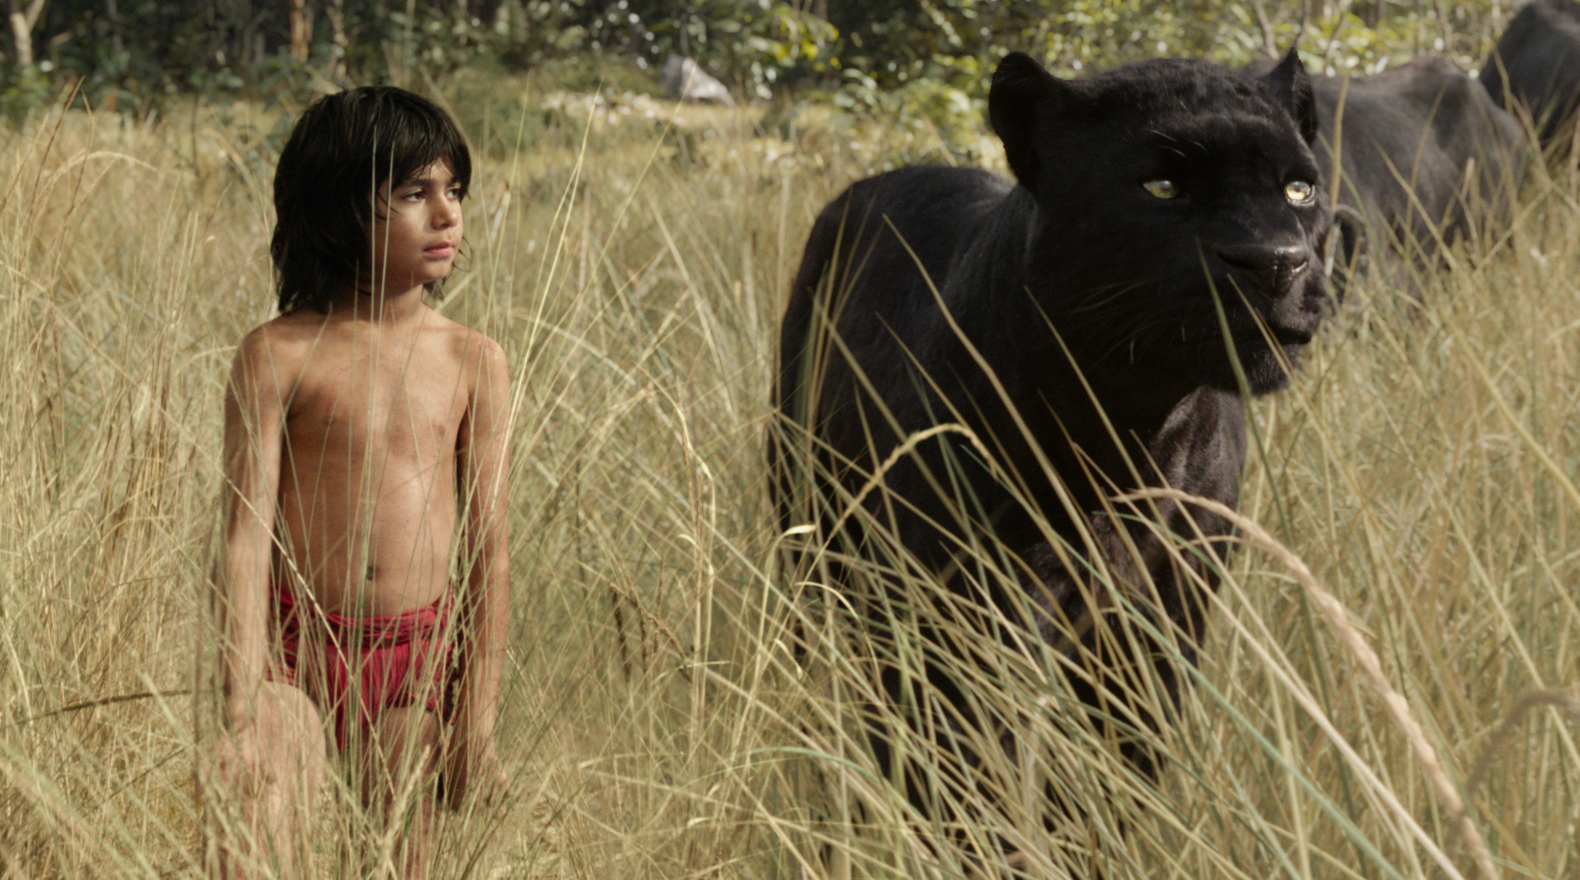 de_the-jungle-book_gi_1095_34d633bd